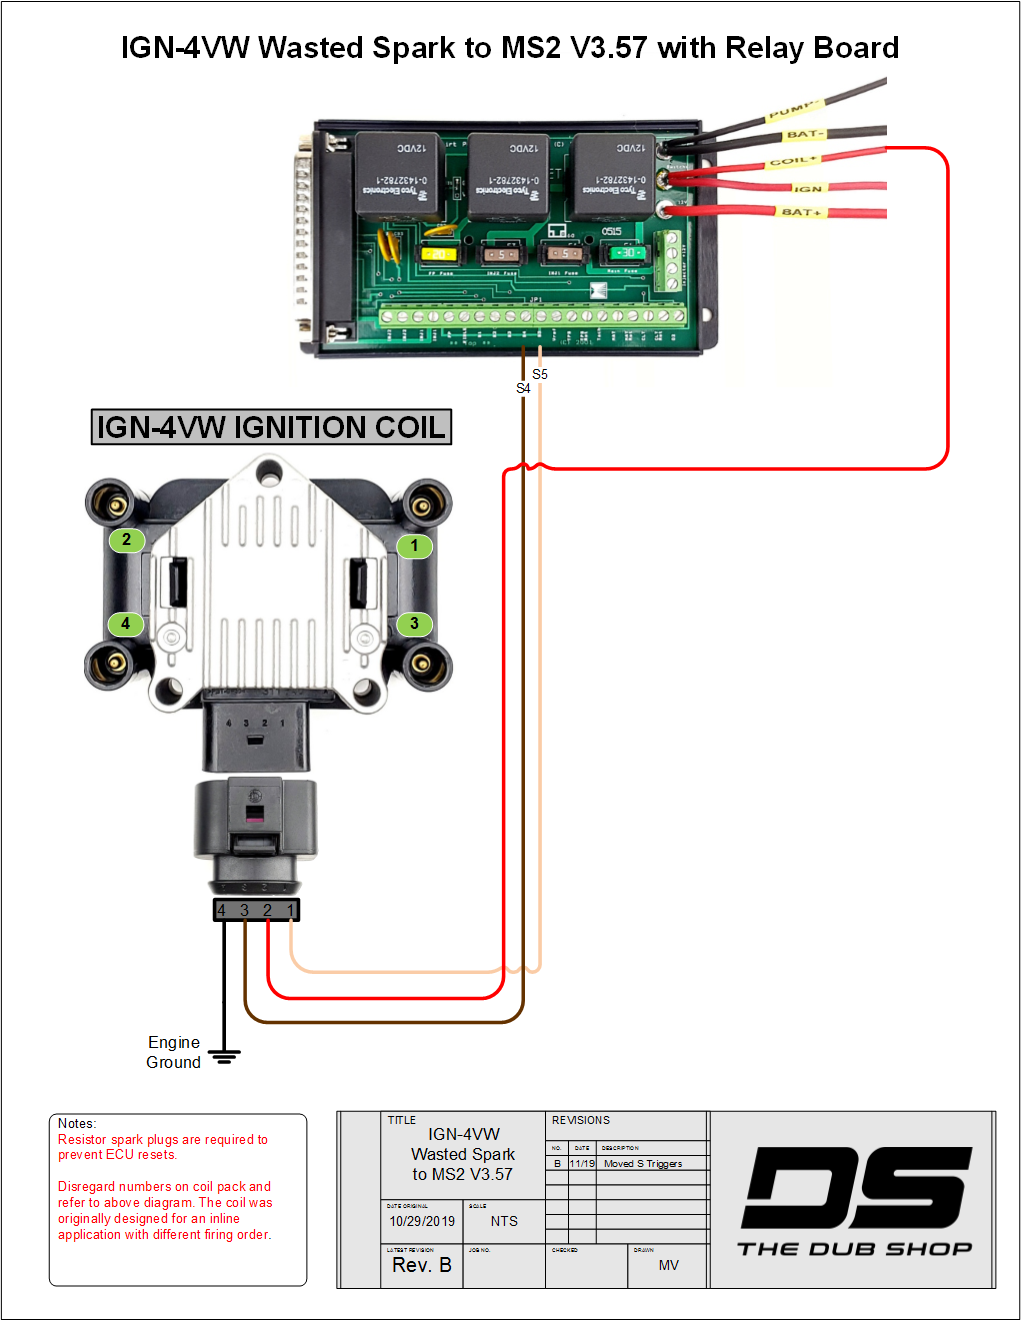 ms2-v357-relay-board-ign4vw-wasted-spark-revb.png